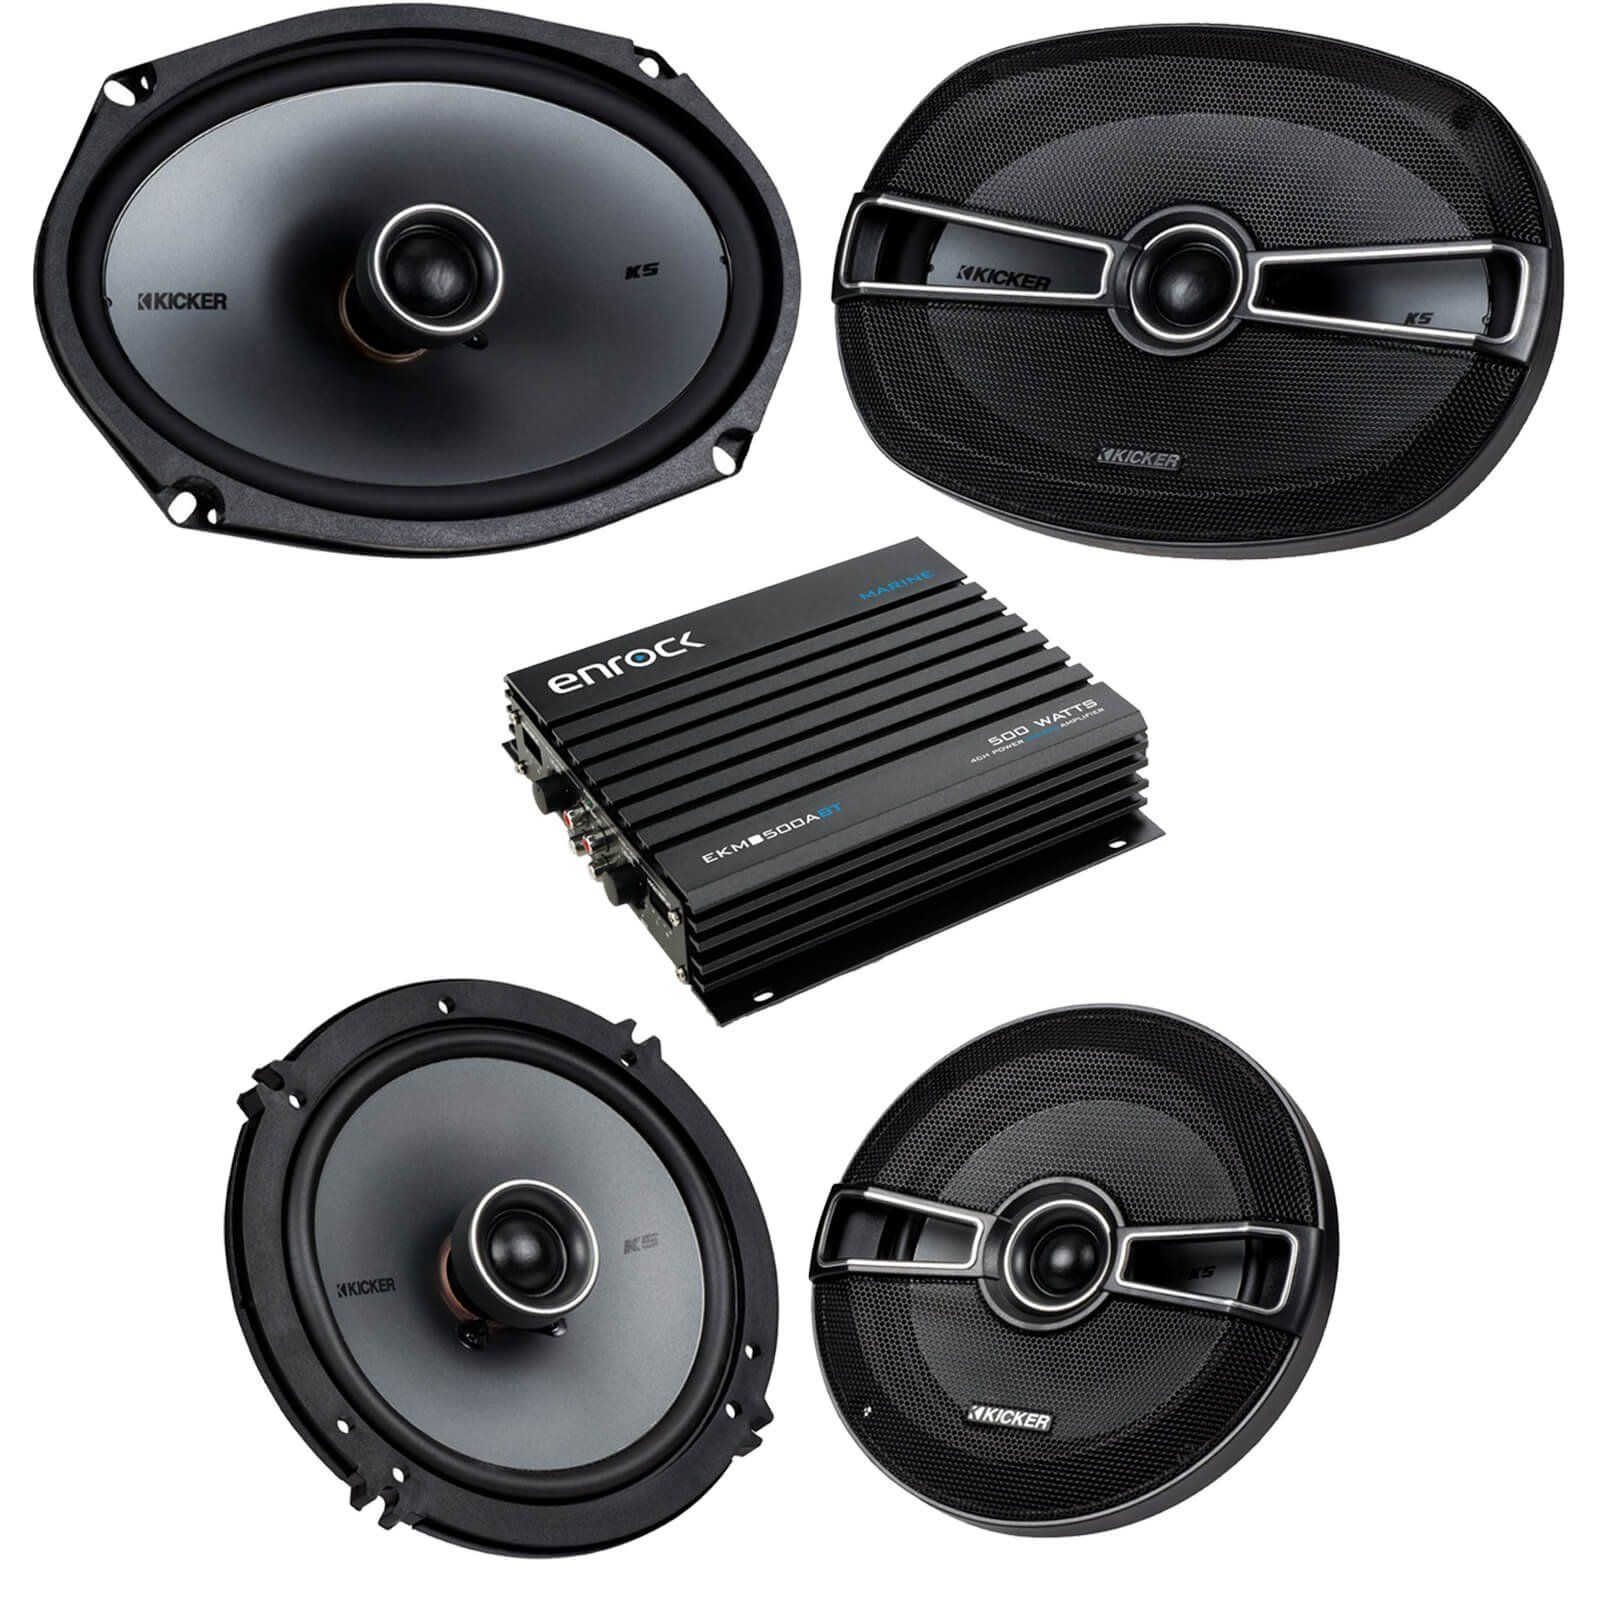 hight resolution of car speaker bluetooth streming set bundle combo with 2 kicker 41ksc654 6 5 inch 2 way vehicle stereo speakers 2 kicker 41ksc694 6x9 car speaker system